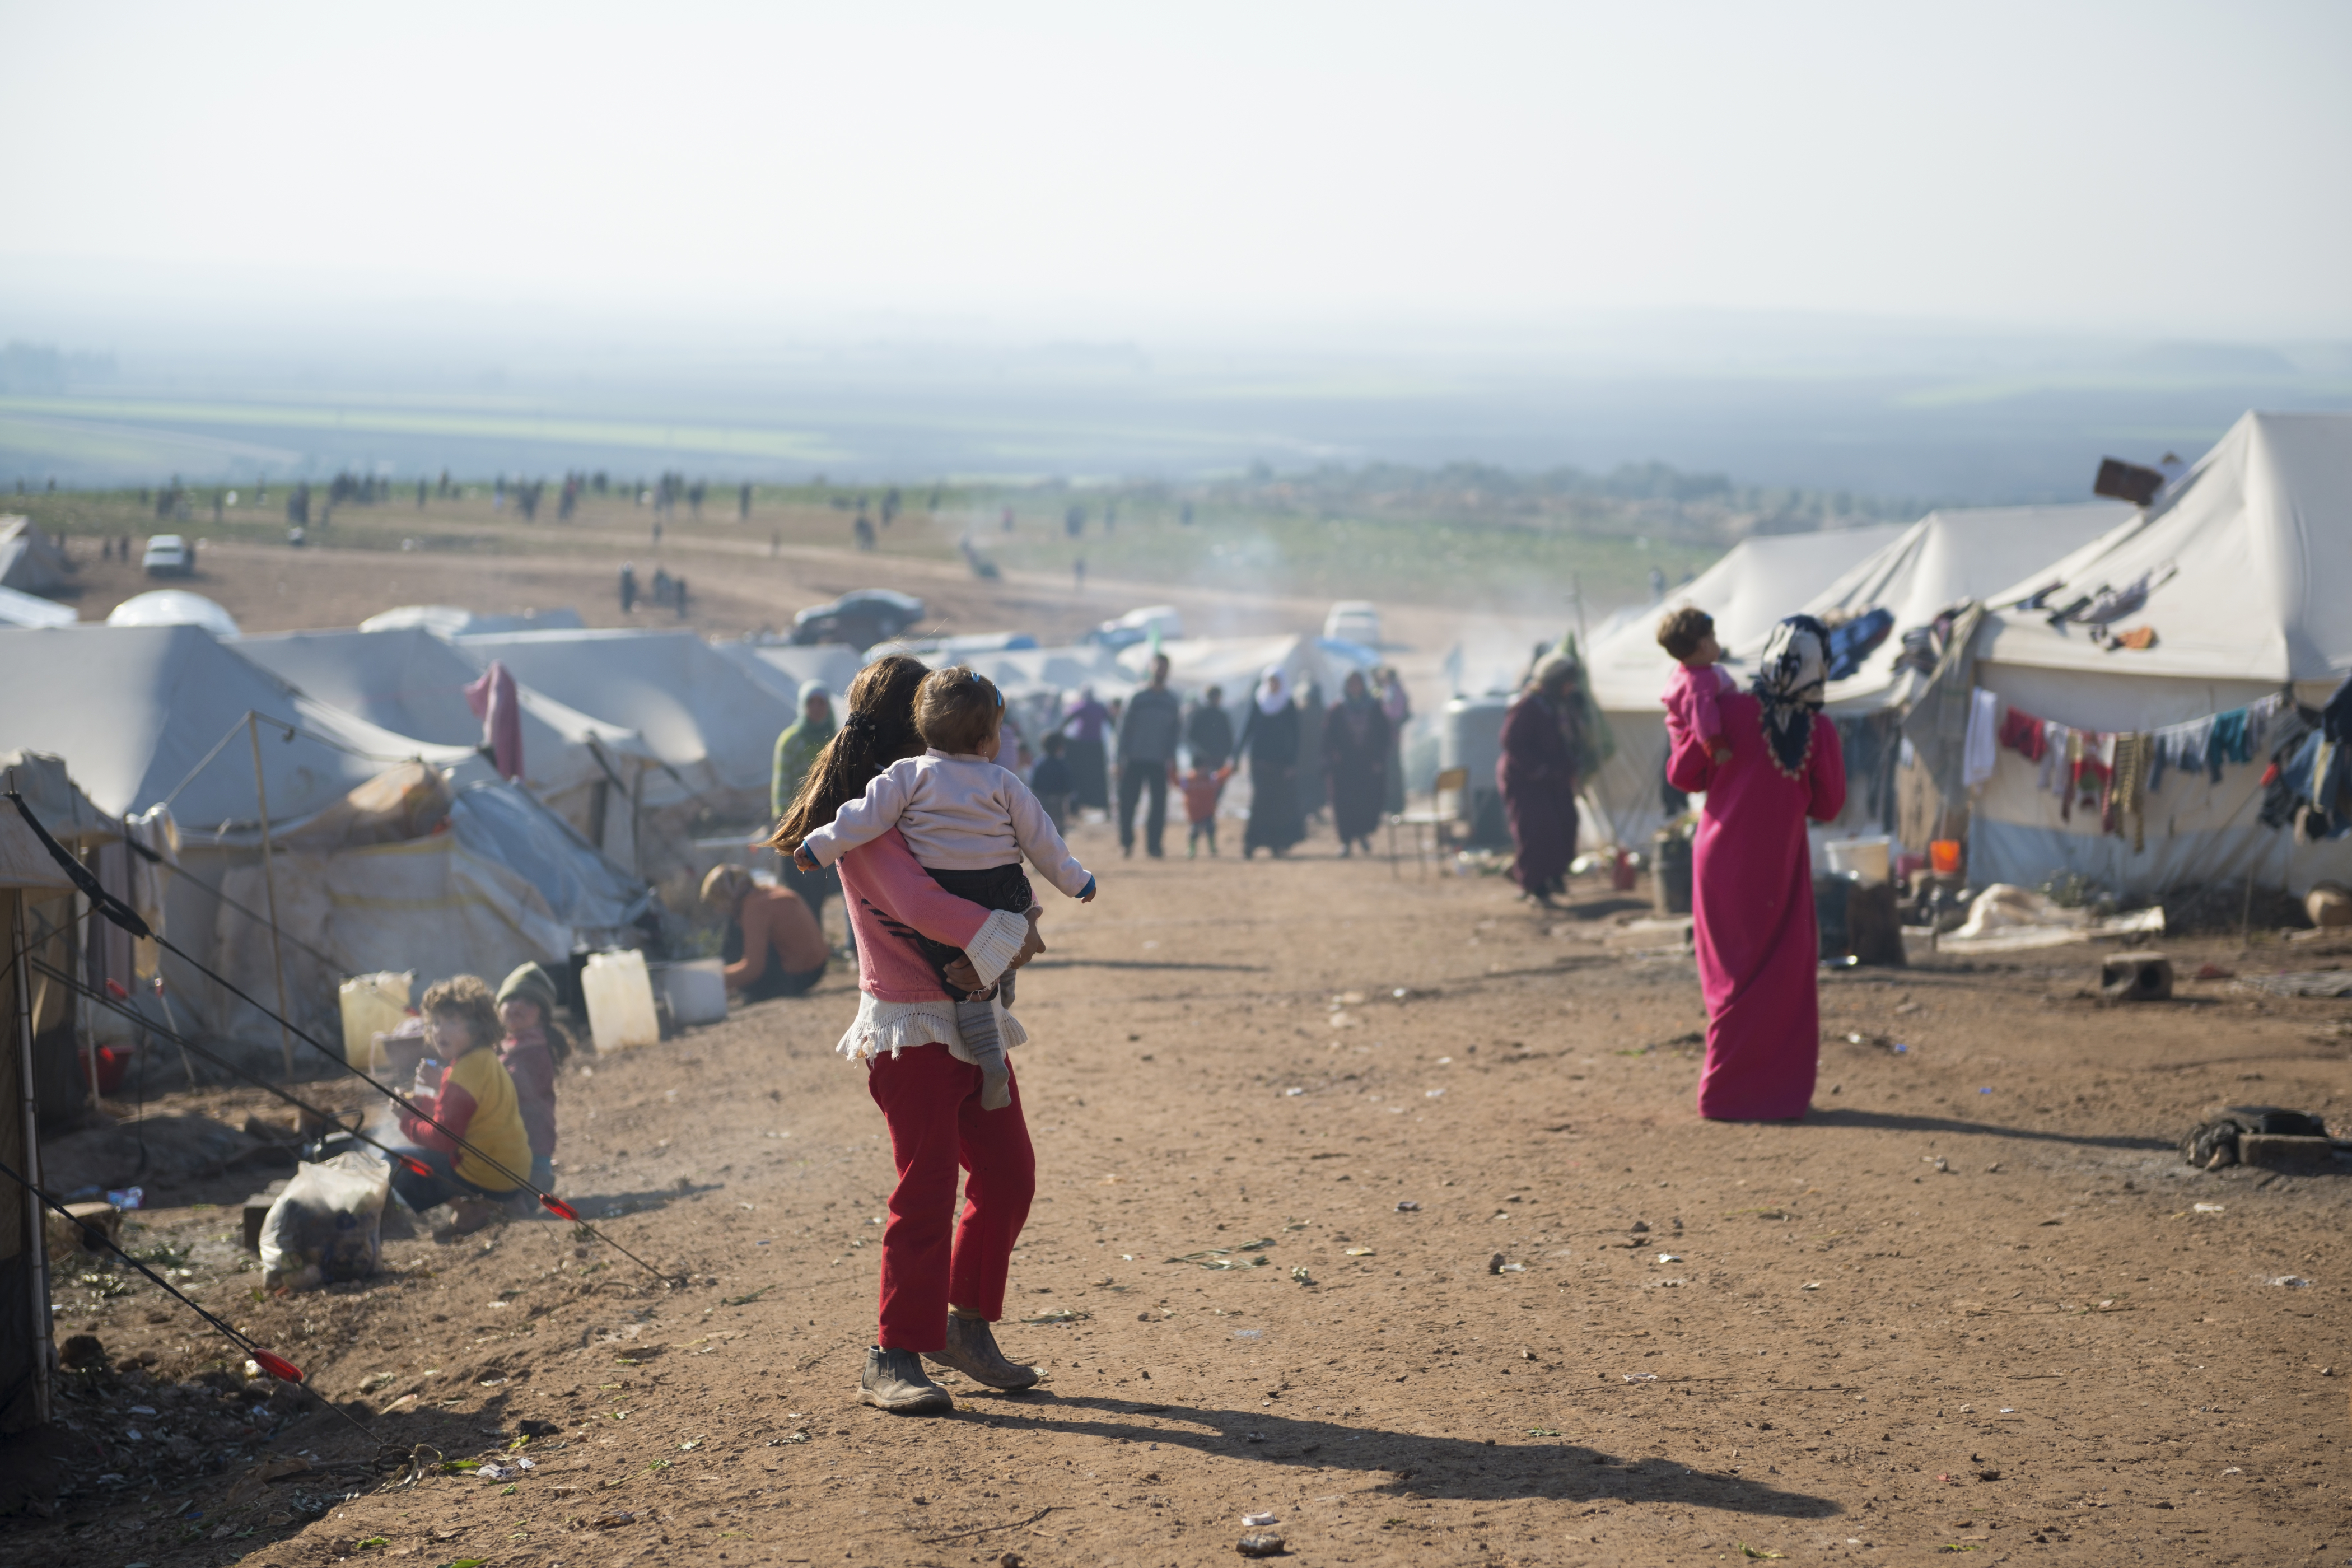 The syrian refugee crisis in america